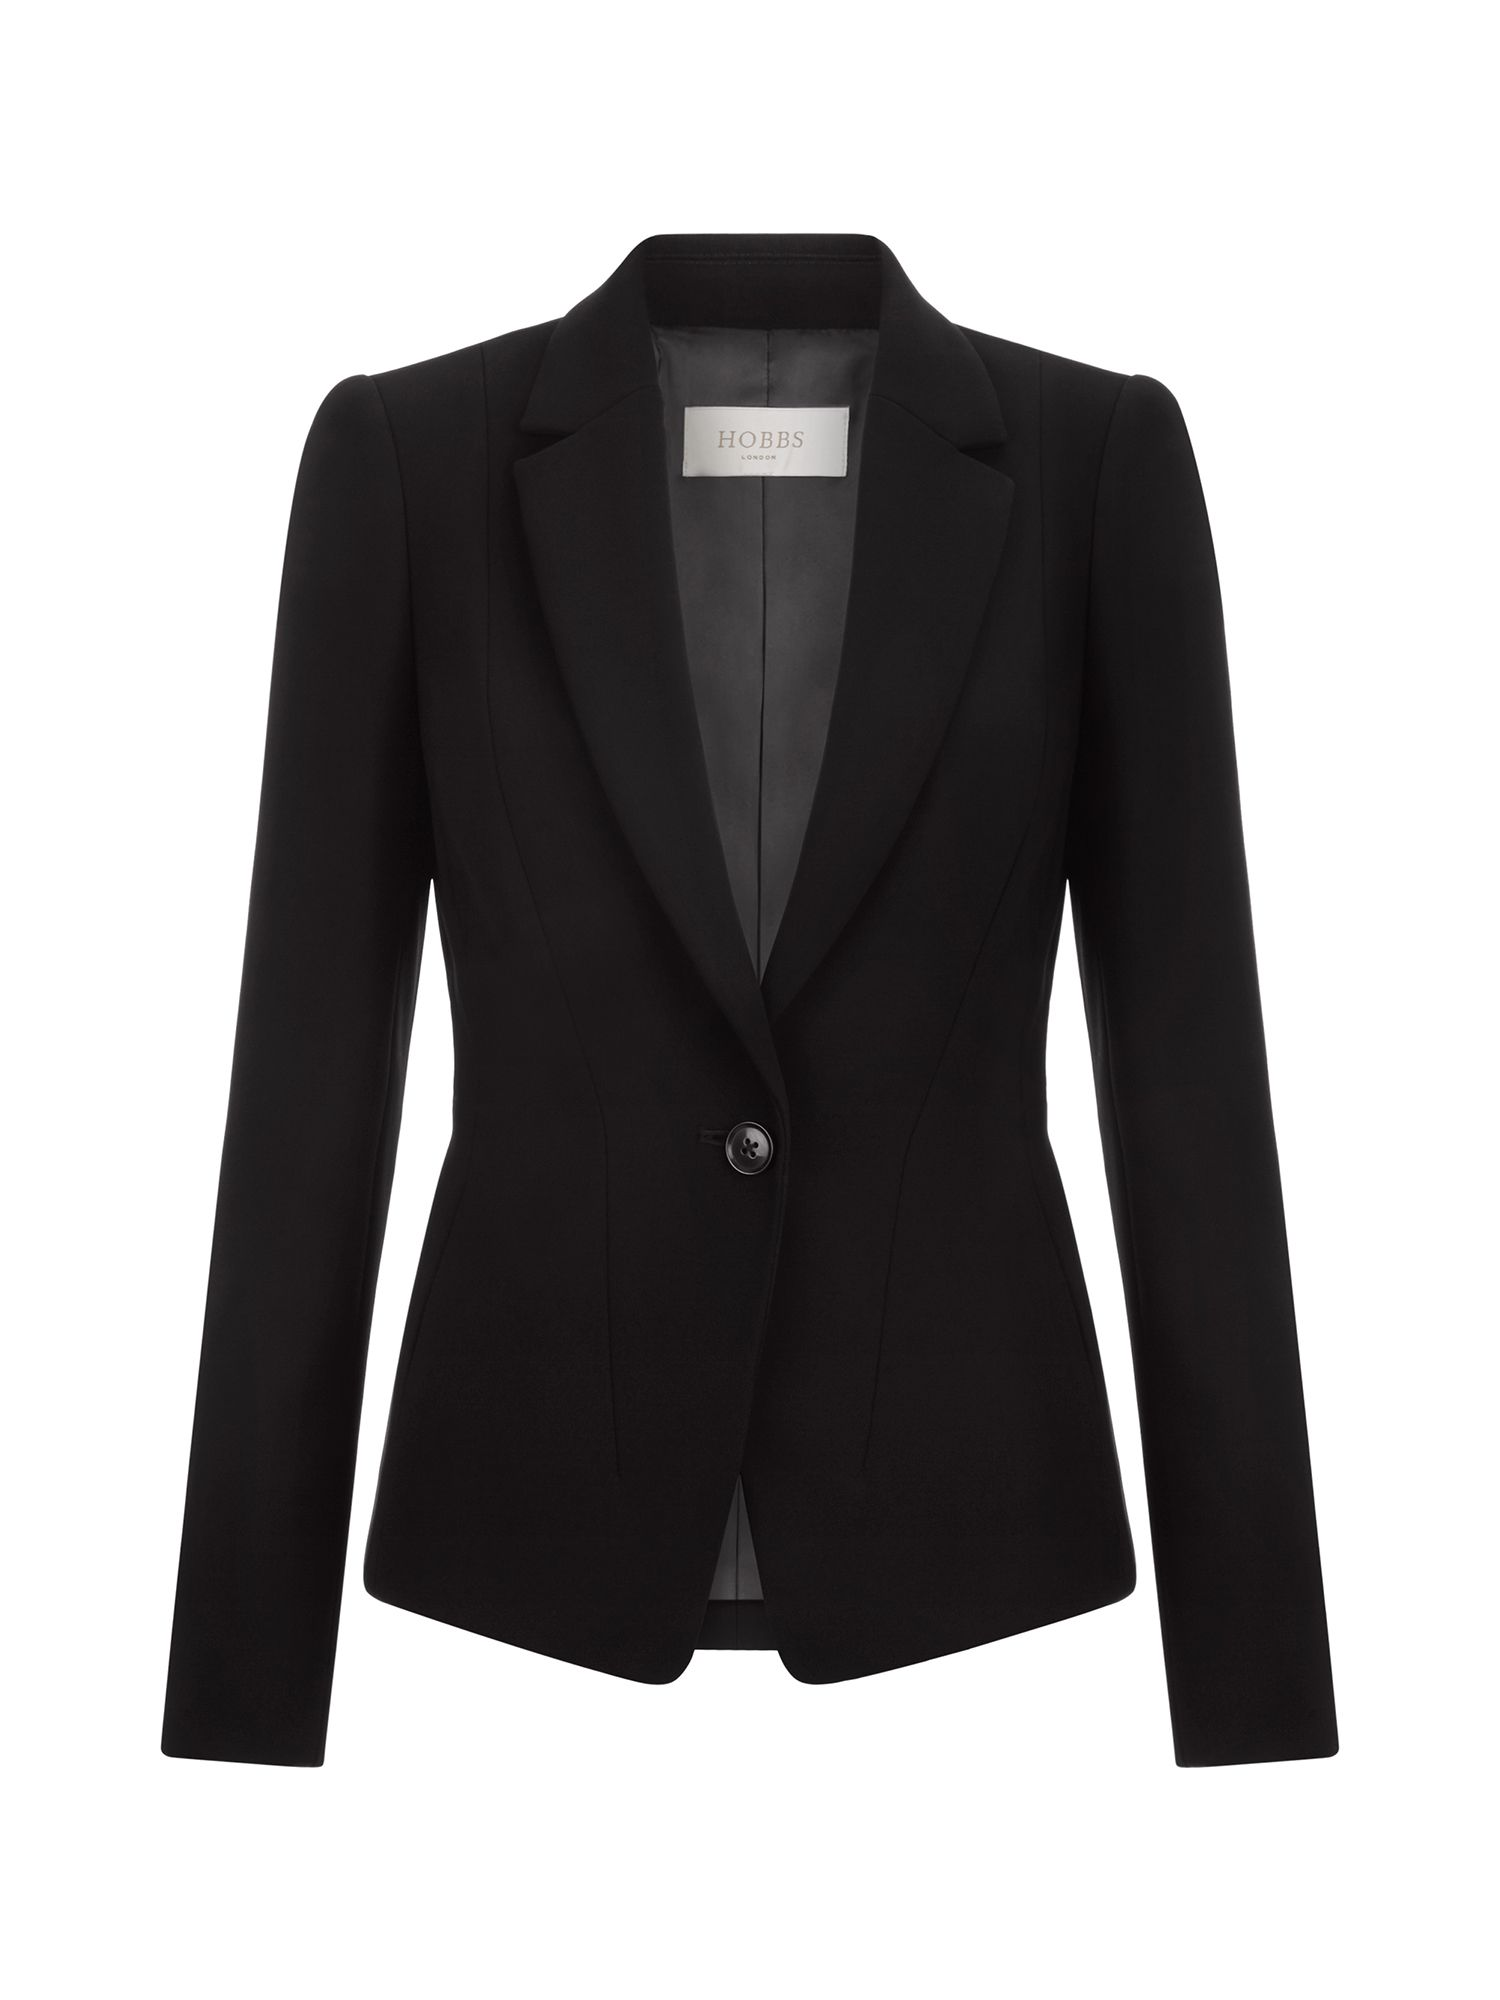 Hobbs Caitlyn Jacket, Black